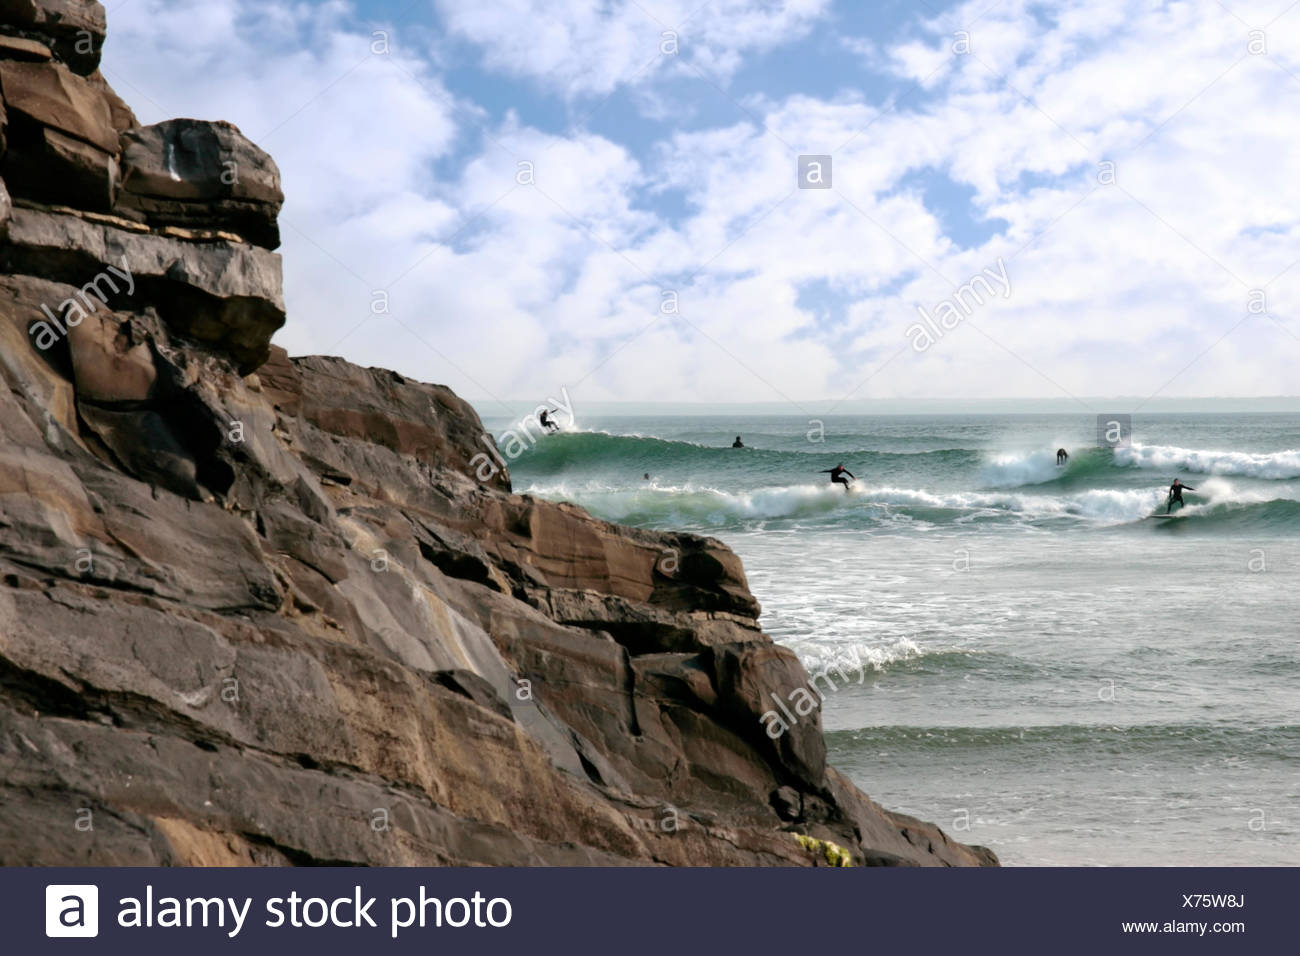 beautiful clean atlantic ocean with surfers catching the waves with cliffs in foreground on Irelands coast - Stock Image